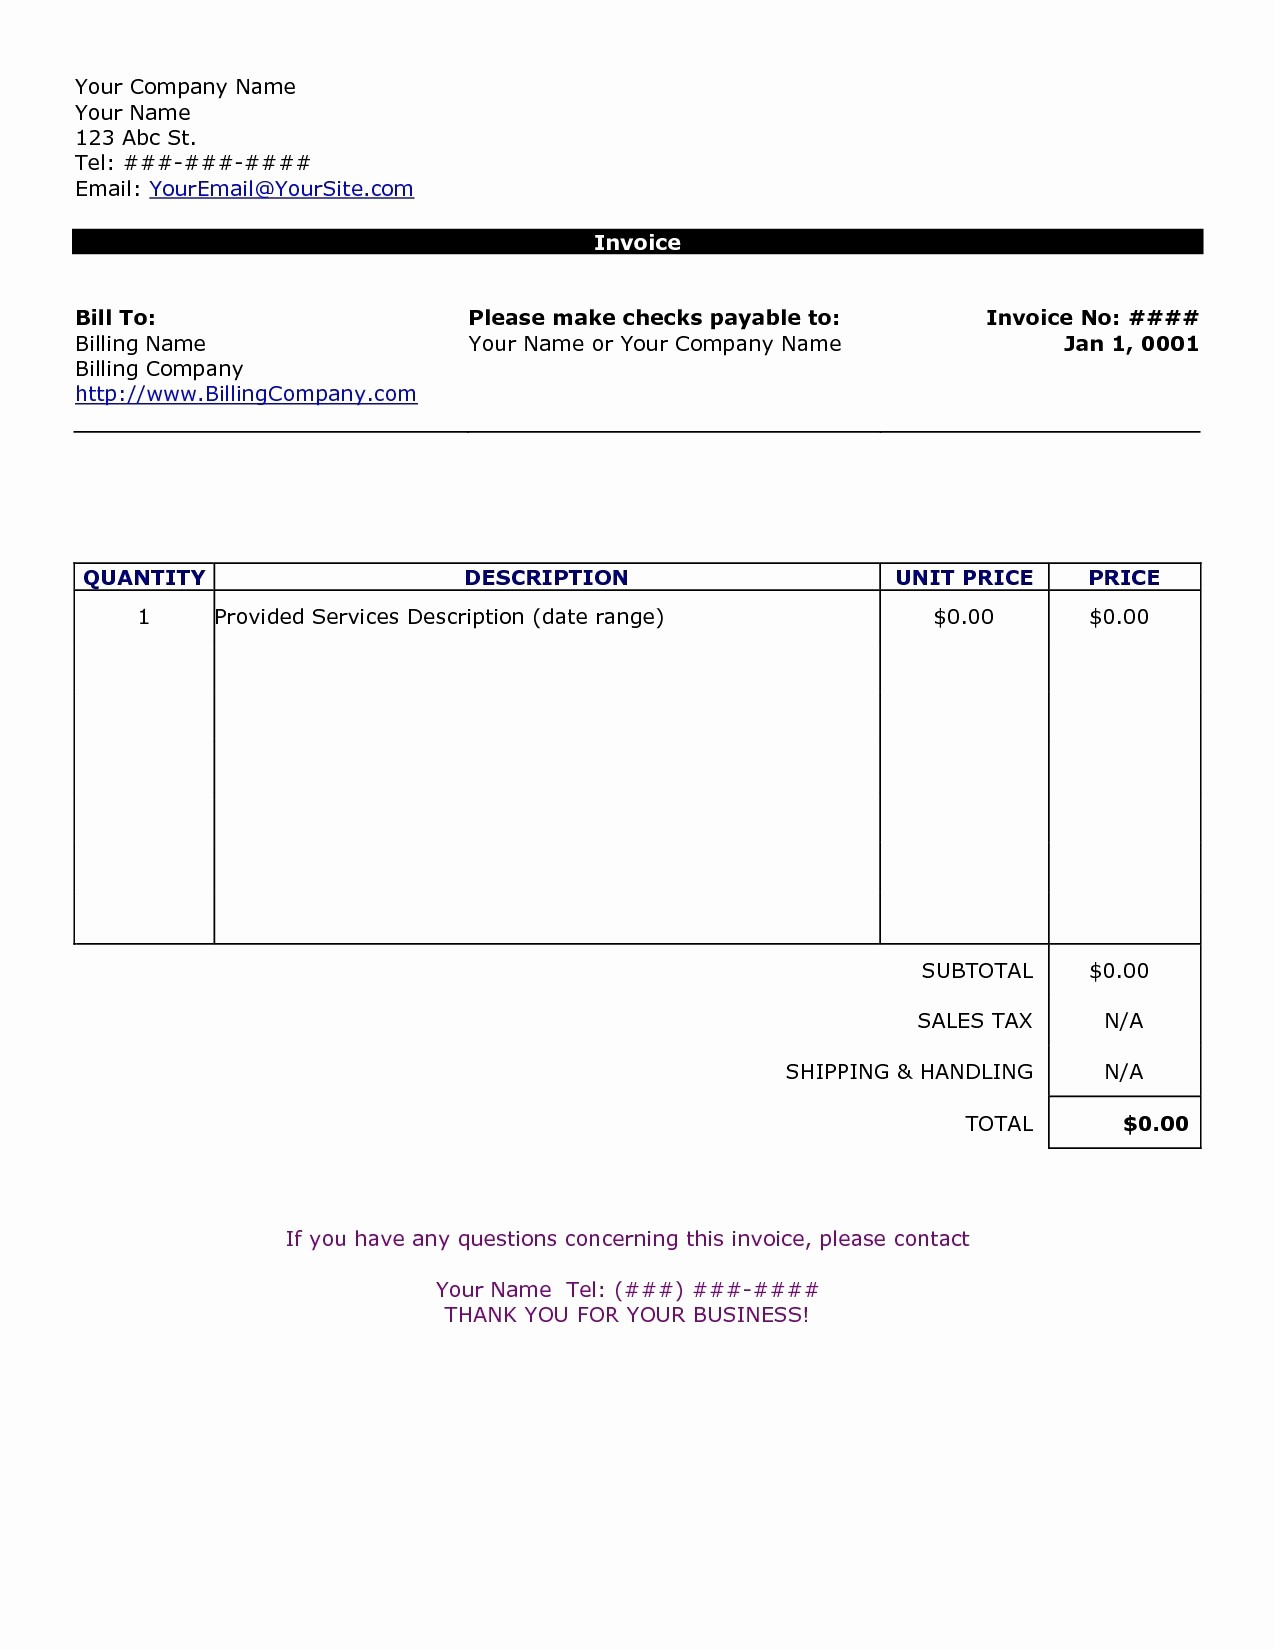 Create Invoice Template In Word Luxury Create An Invoice In Word Invoice Template Ideas